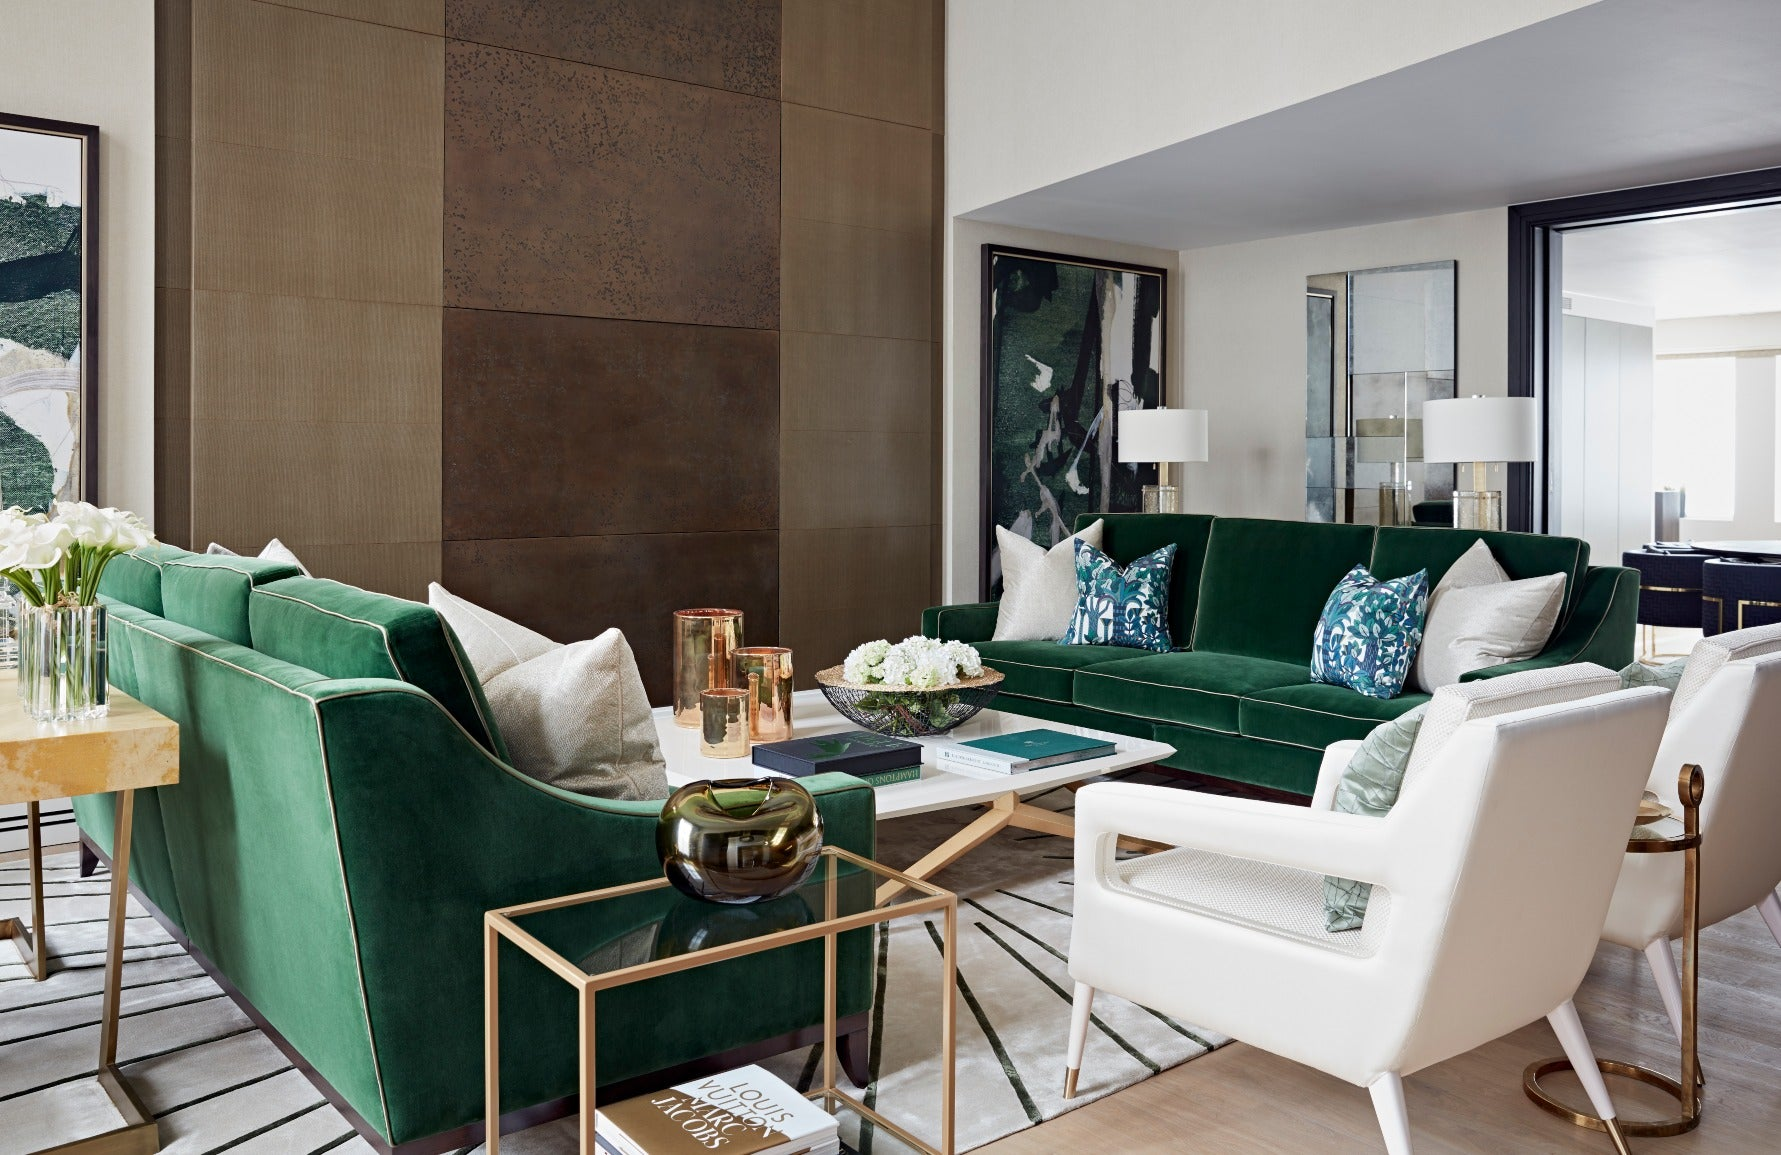 Green Living Room | Interior by Taylor Howes | Shop colourful decor on LuxDeco.com